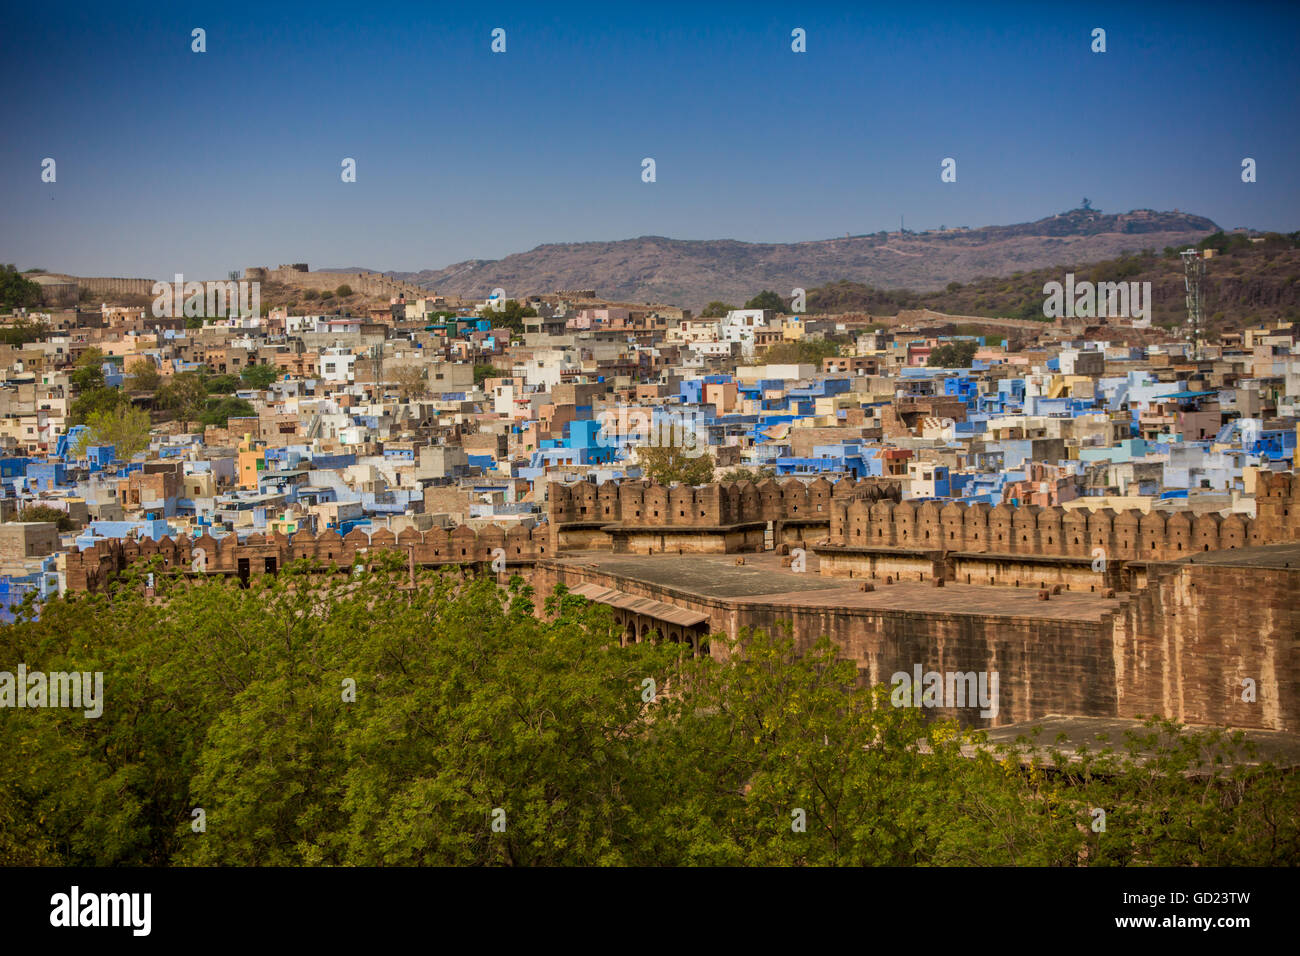 The city wall of Mehrangarh Fort towering over the blue rooftops in Jodhpur, the Blue City, Rajasthan, India, Asia - Stock Image